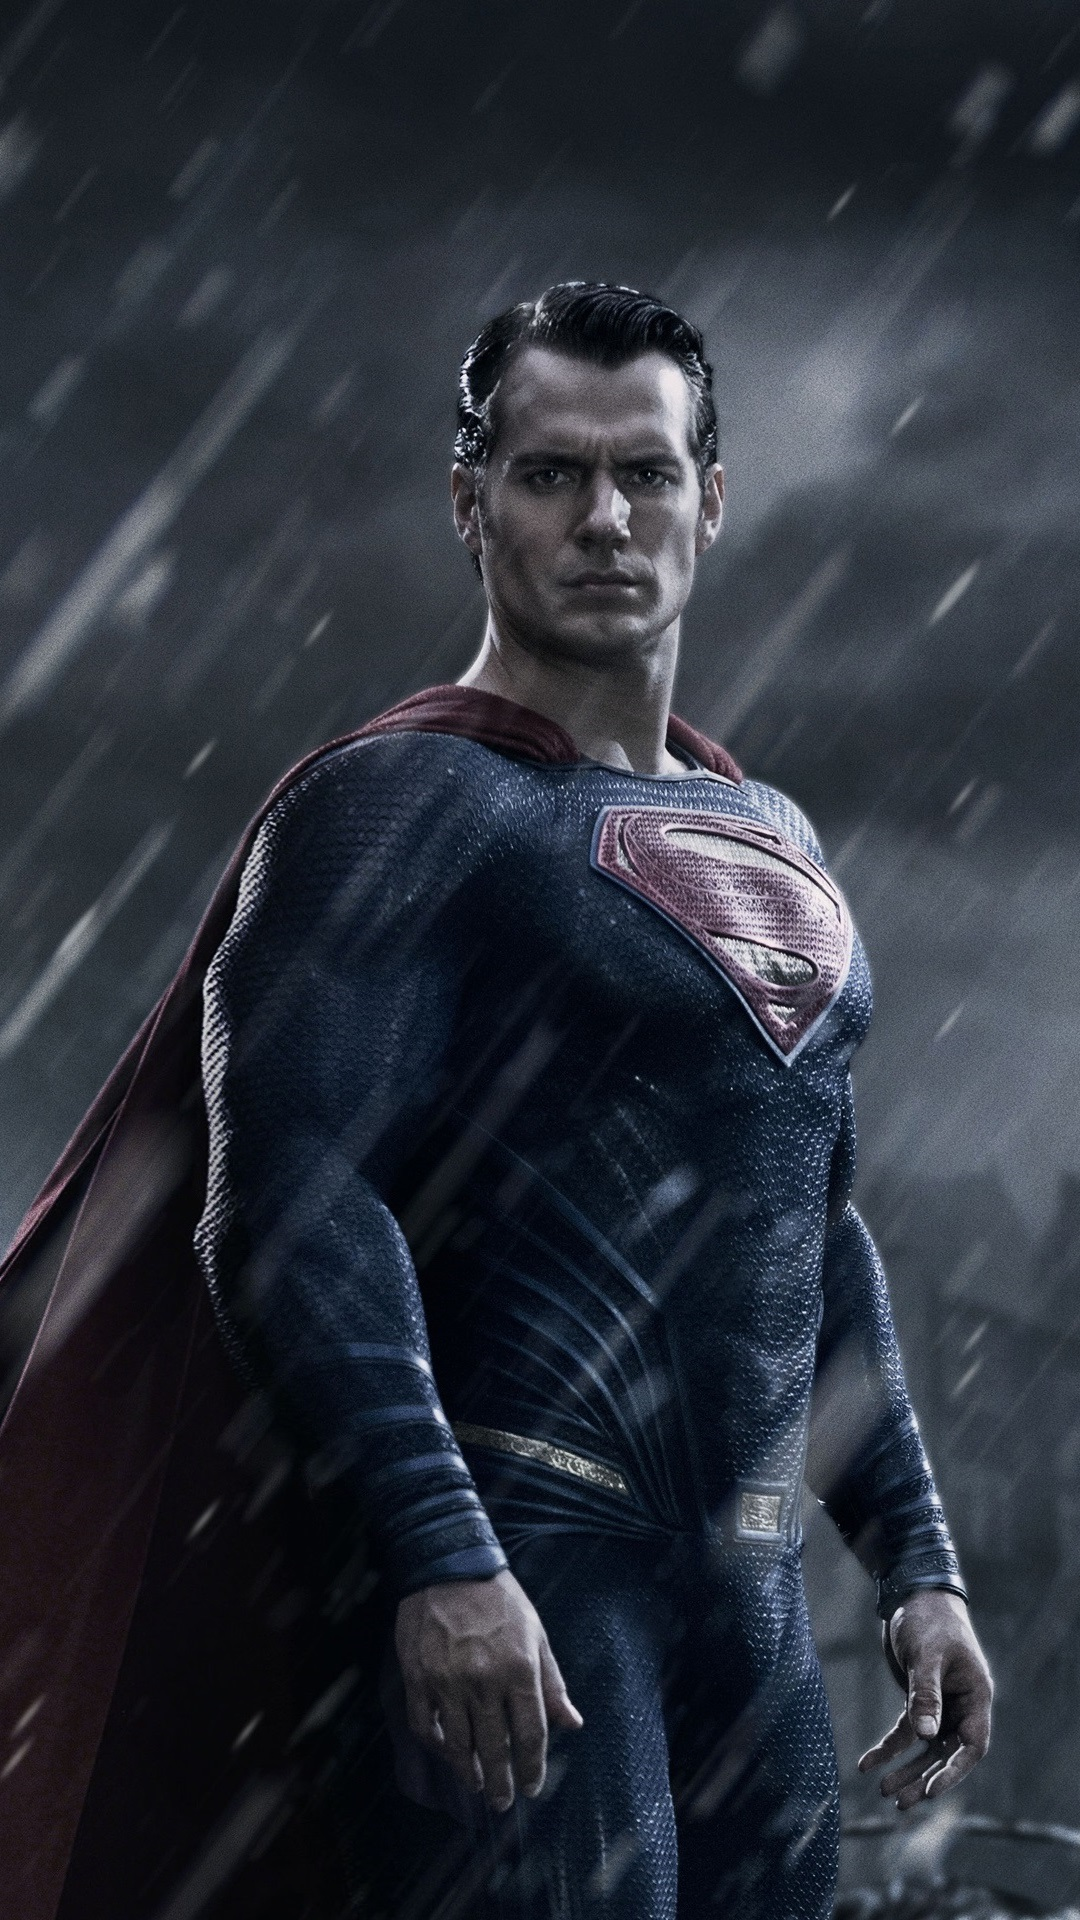 Batman V Superman Dawn Of Justice 1080x1920 Iphone 8 7 6 6s Plus